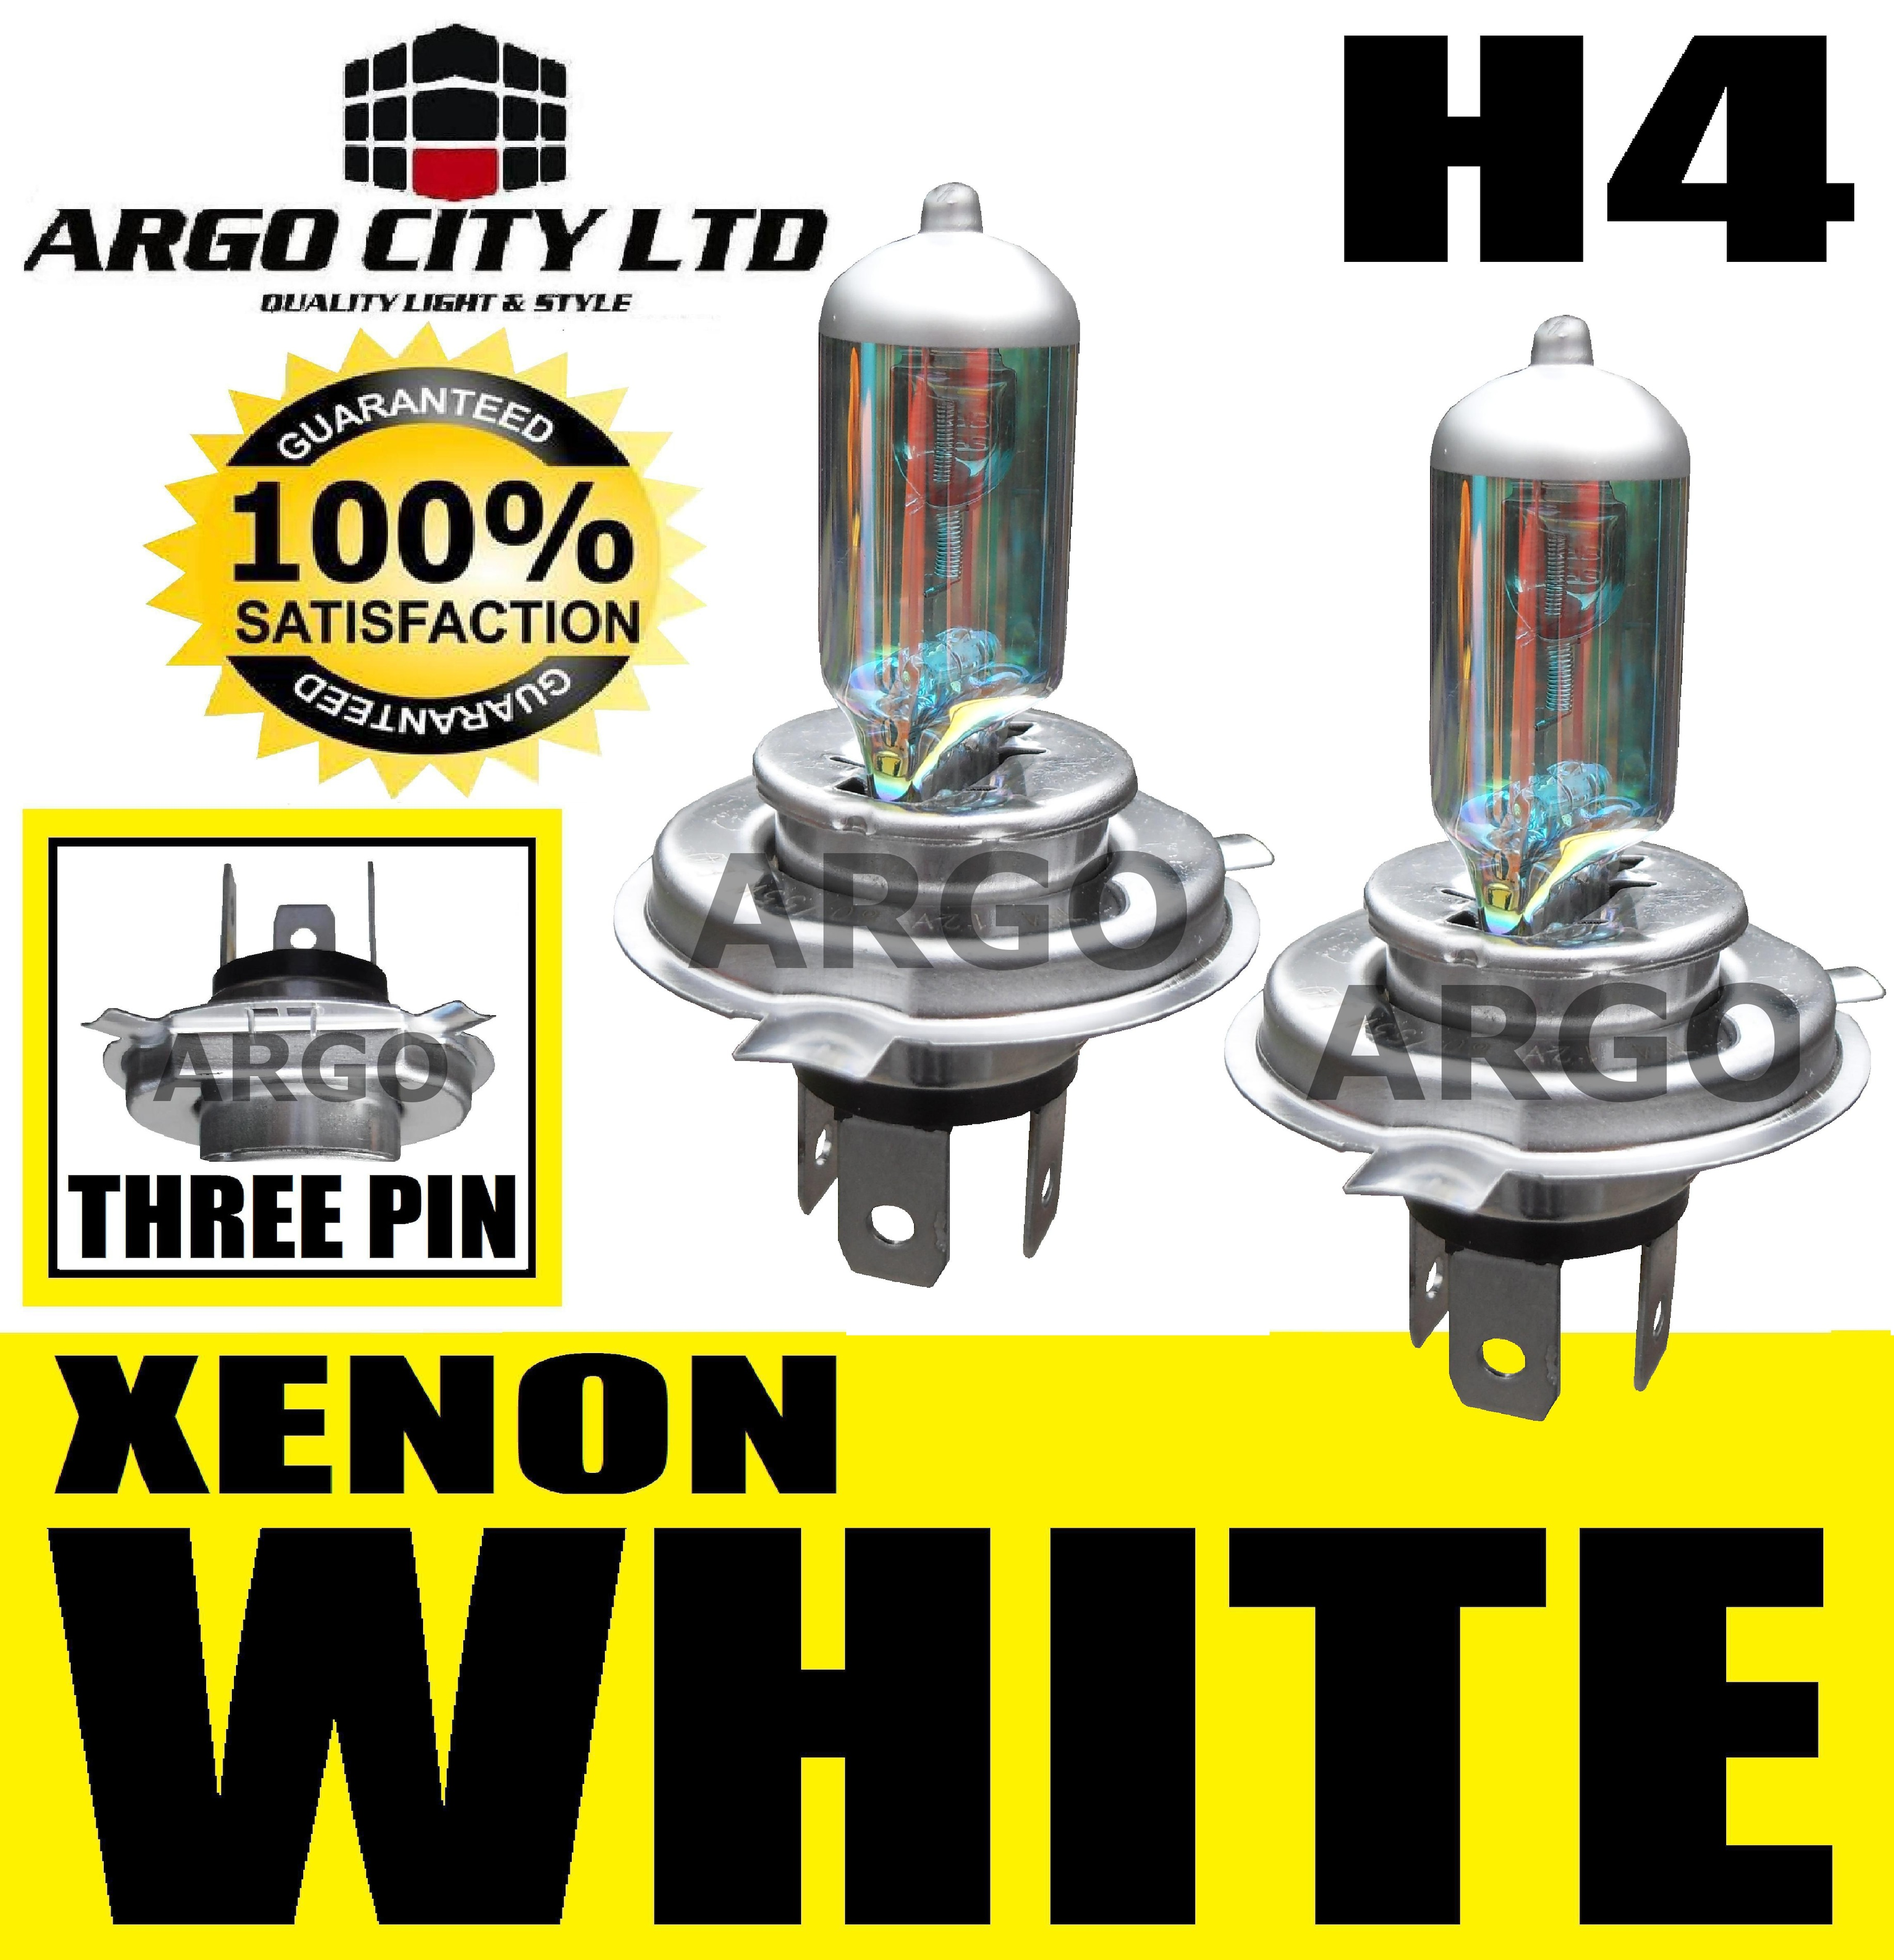 H4 XENON WHITE 55W 472 HEADLIGHT BULBS DAIMLER DAIMLER SOVEREIGN 4.0